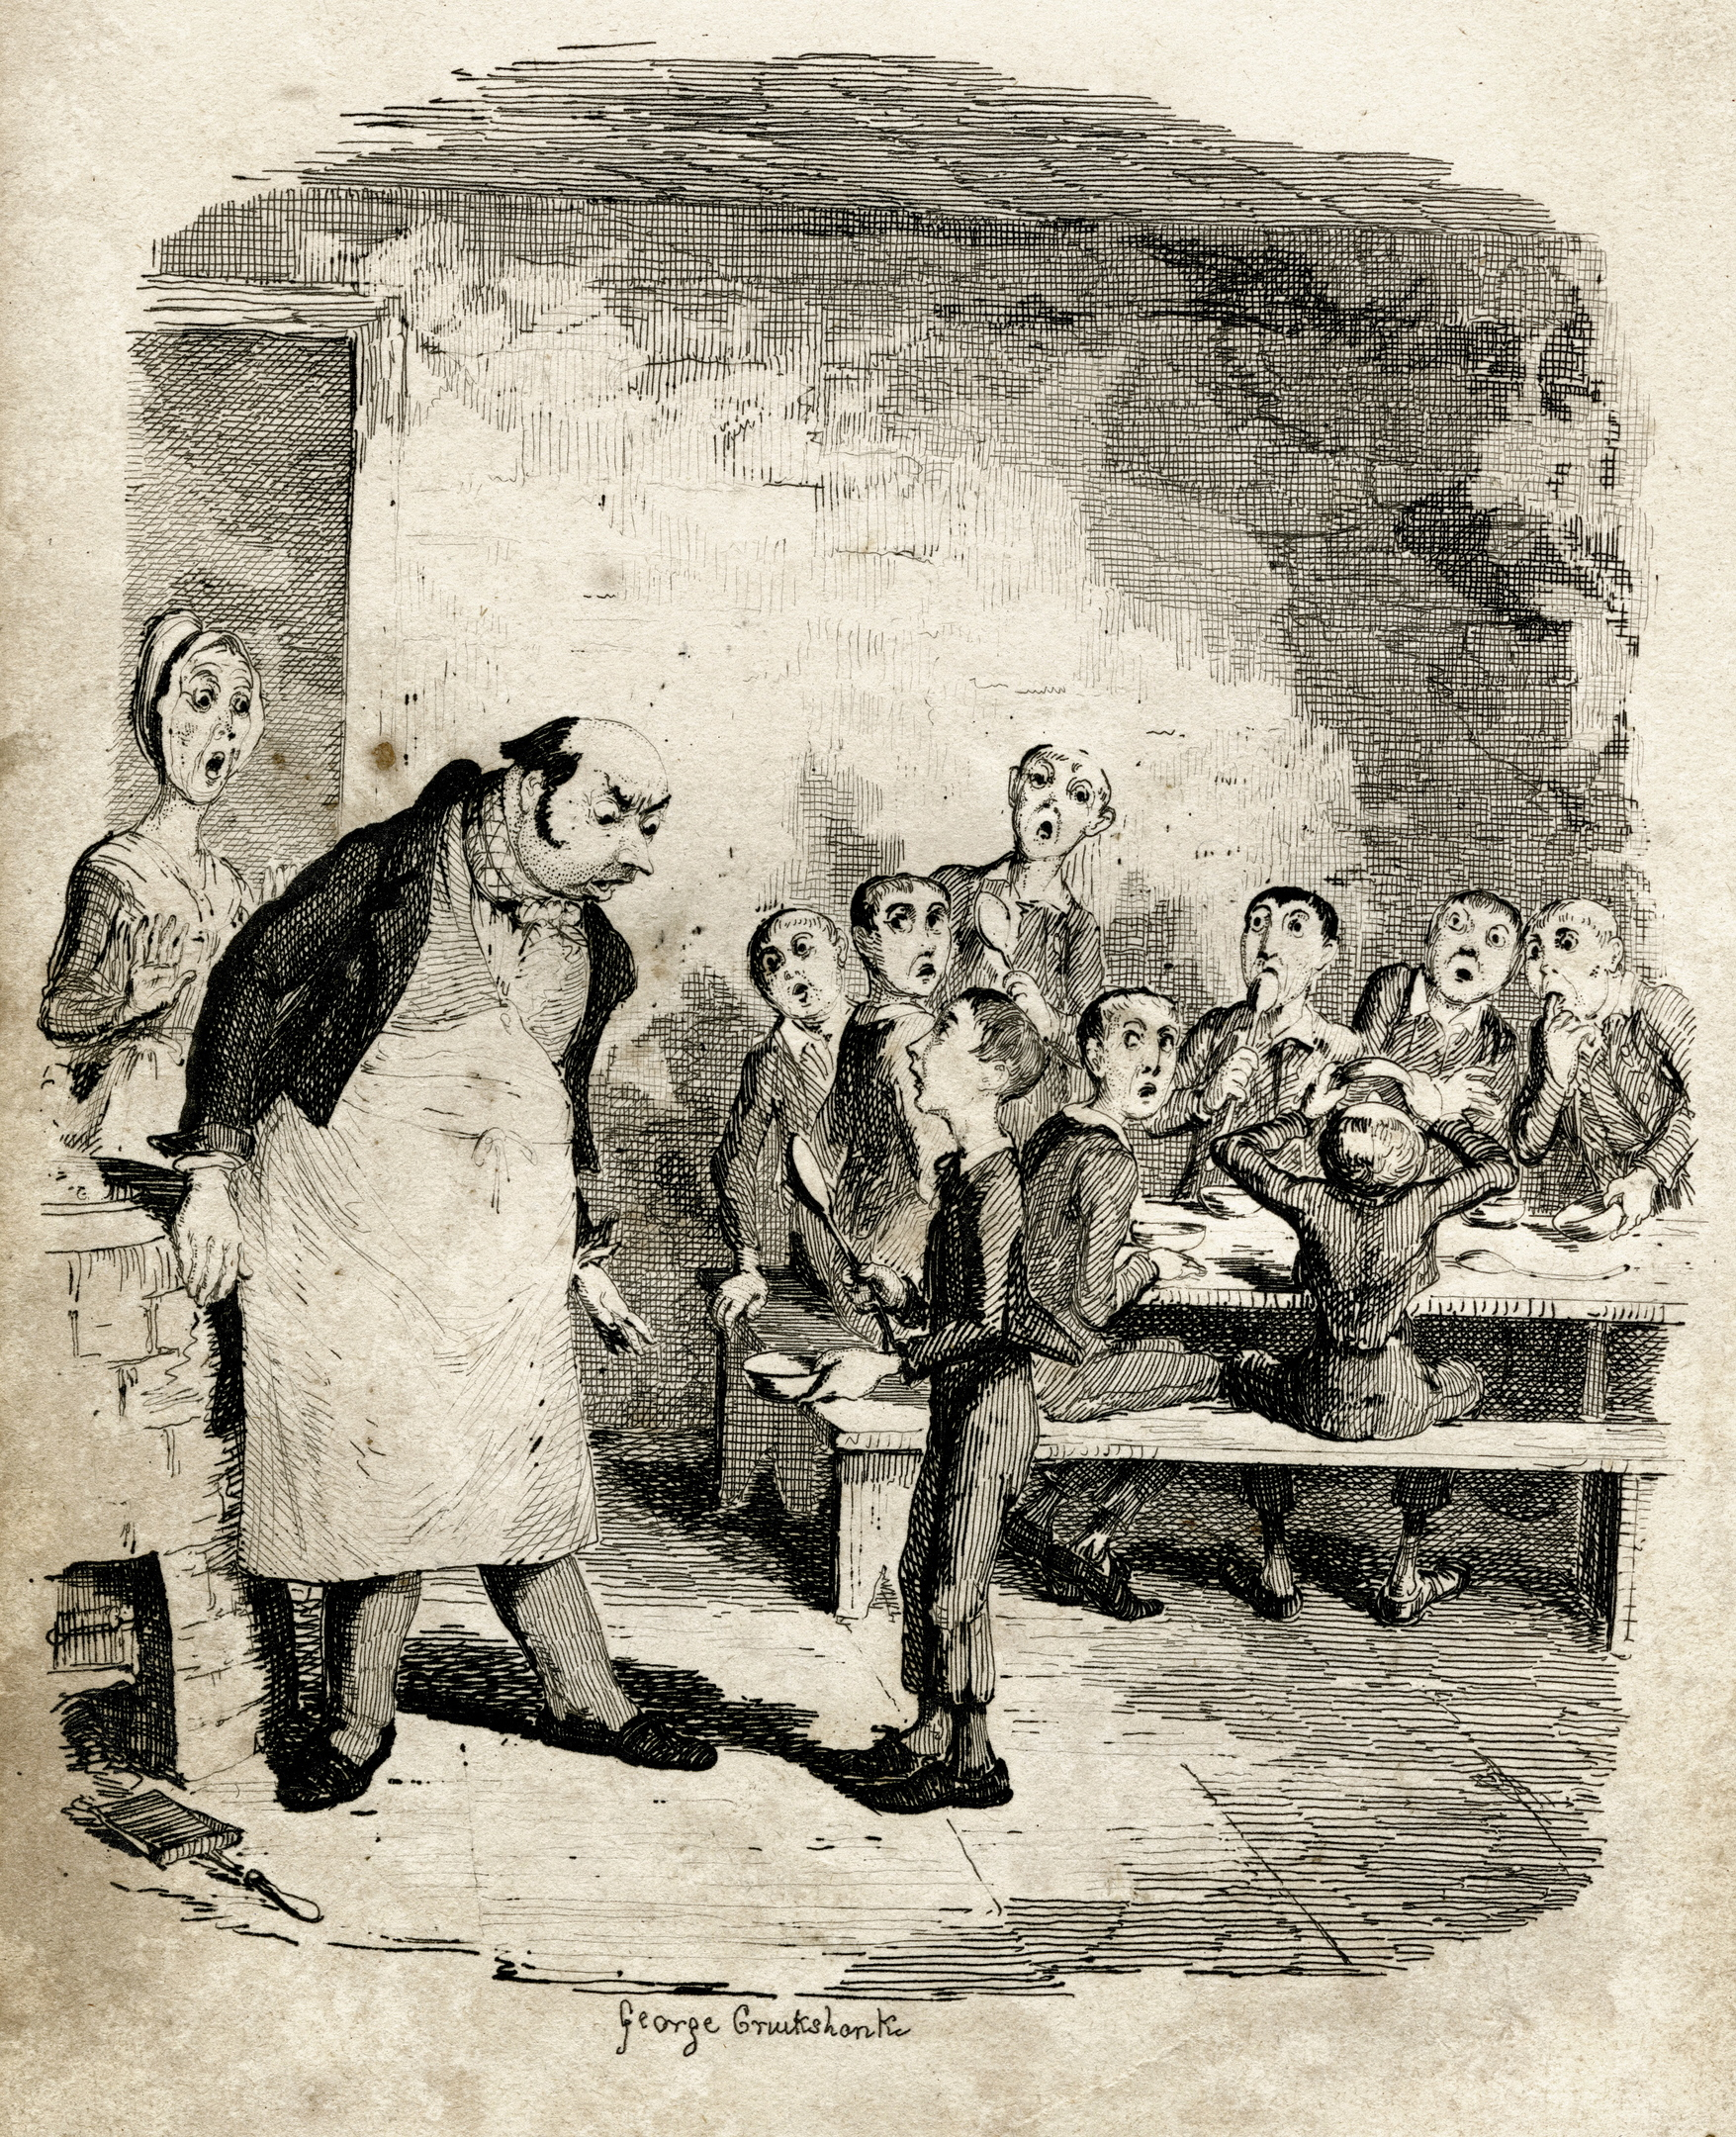 The University of Aberdeen will have many of Dickens' work on display including Oliver Twist and A Christmas Carol. The display will be on show until August.